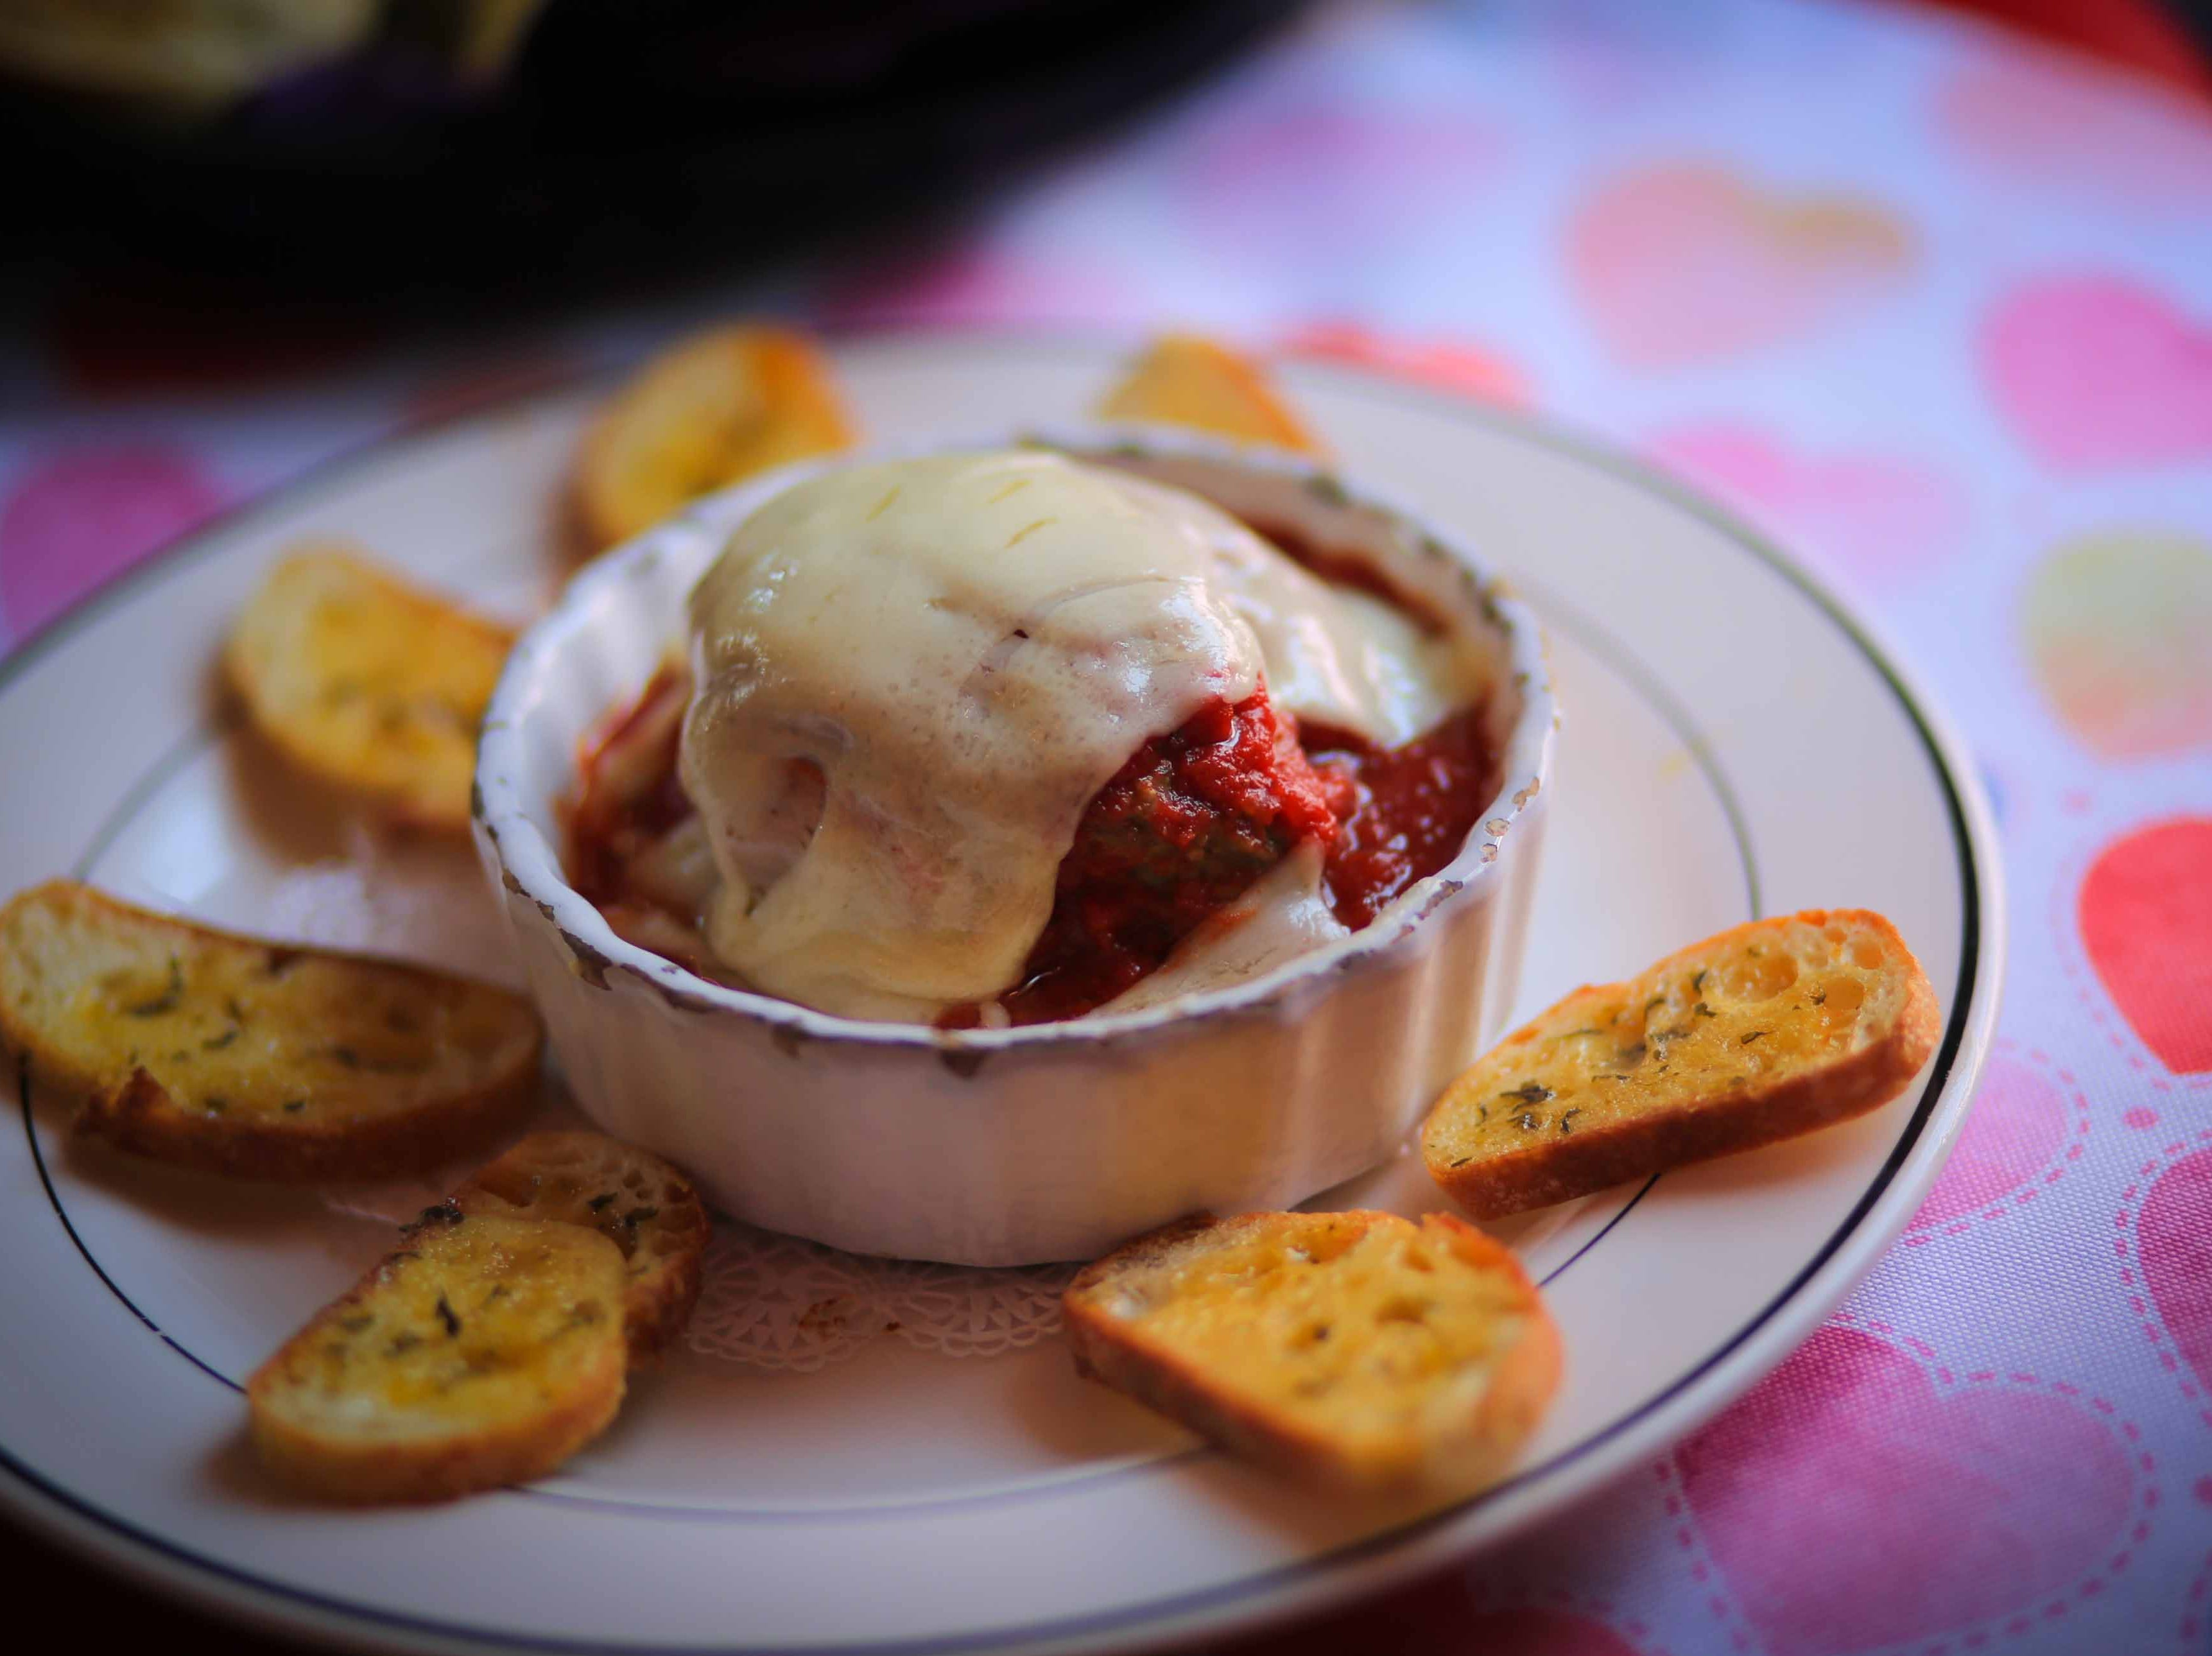 Homemade meatballs with sauce, provolone and mozzaralla at Serendipity Restaurant.